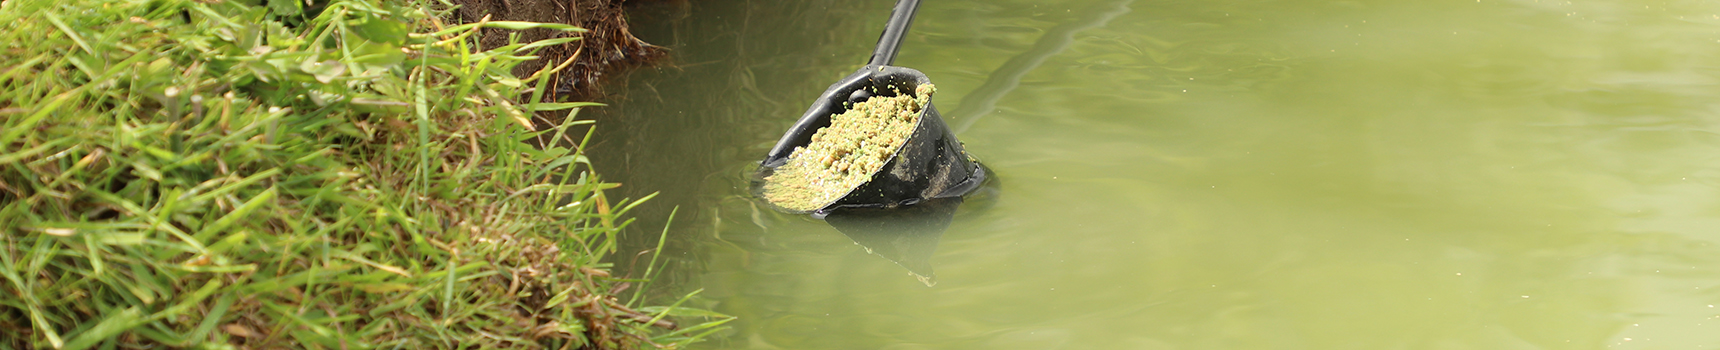 SWEET FISHMEAL GROUND BAIT